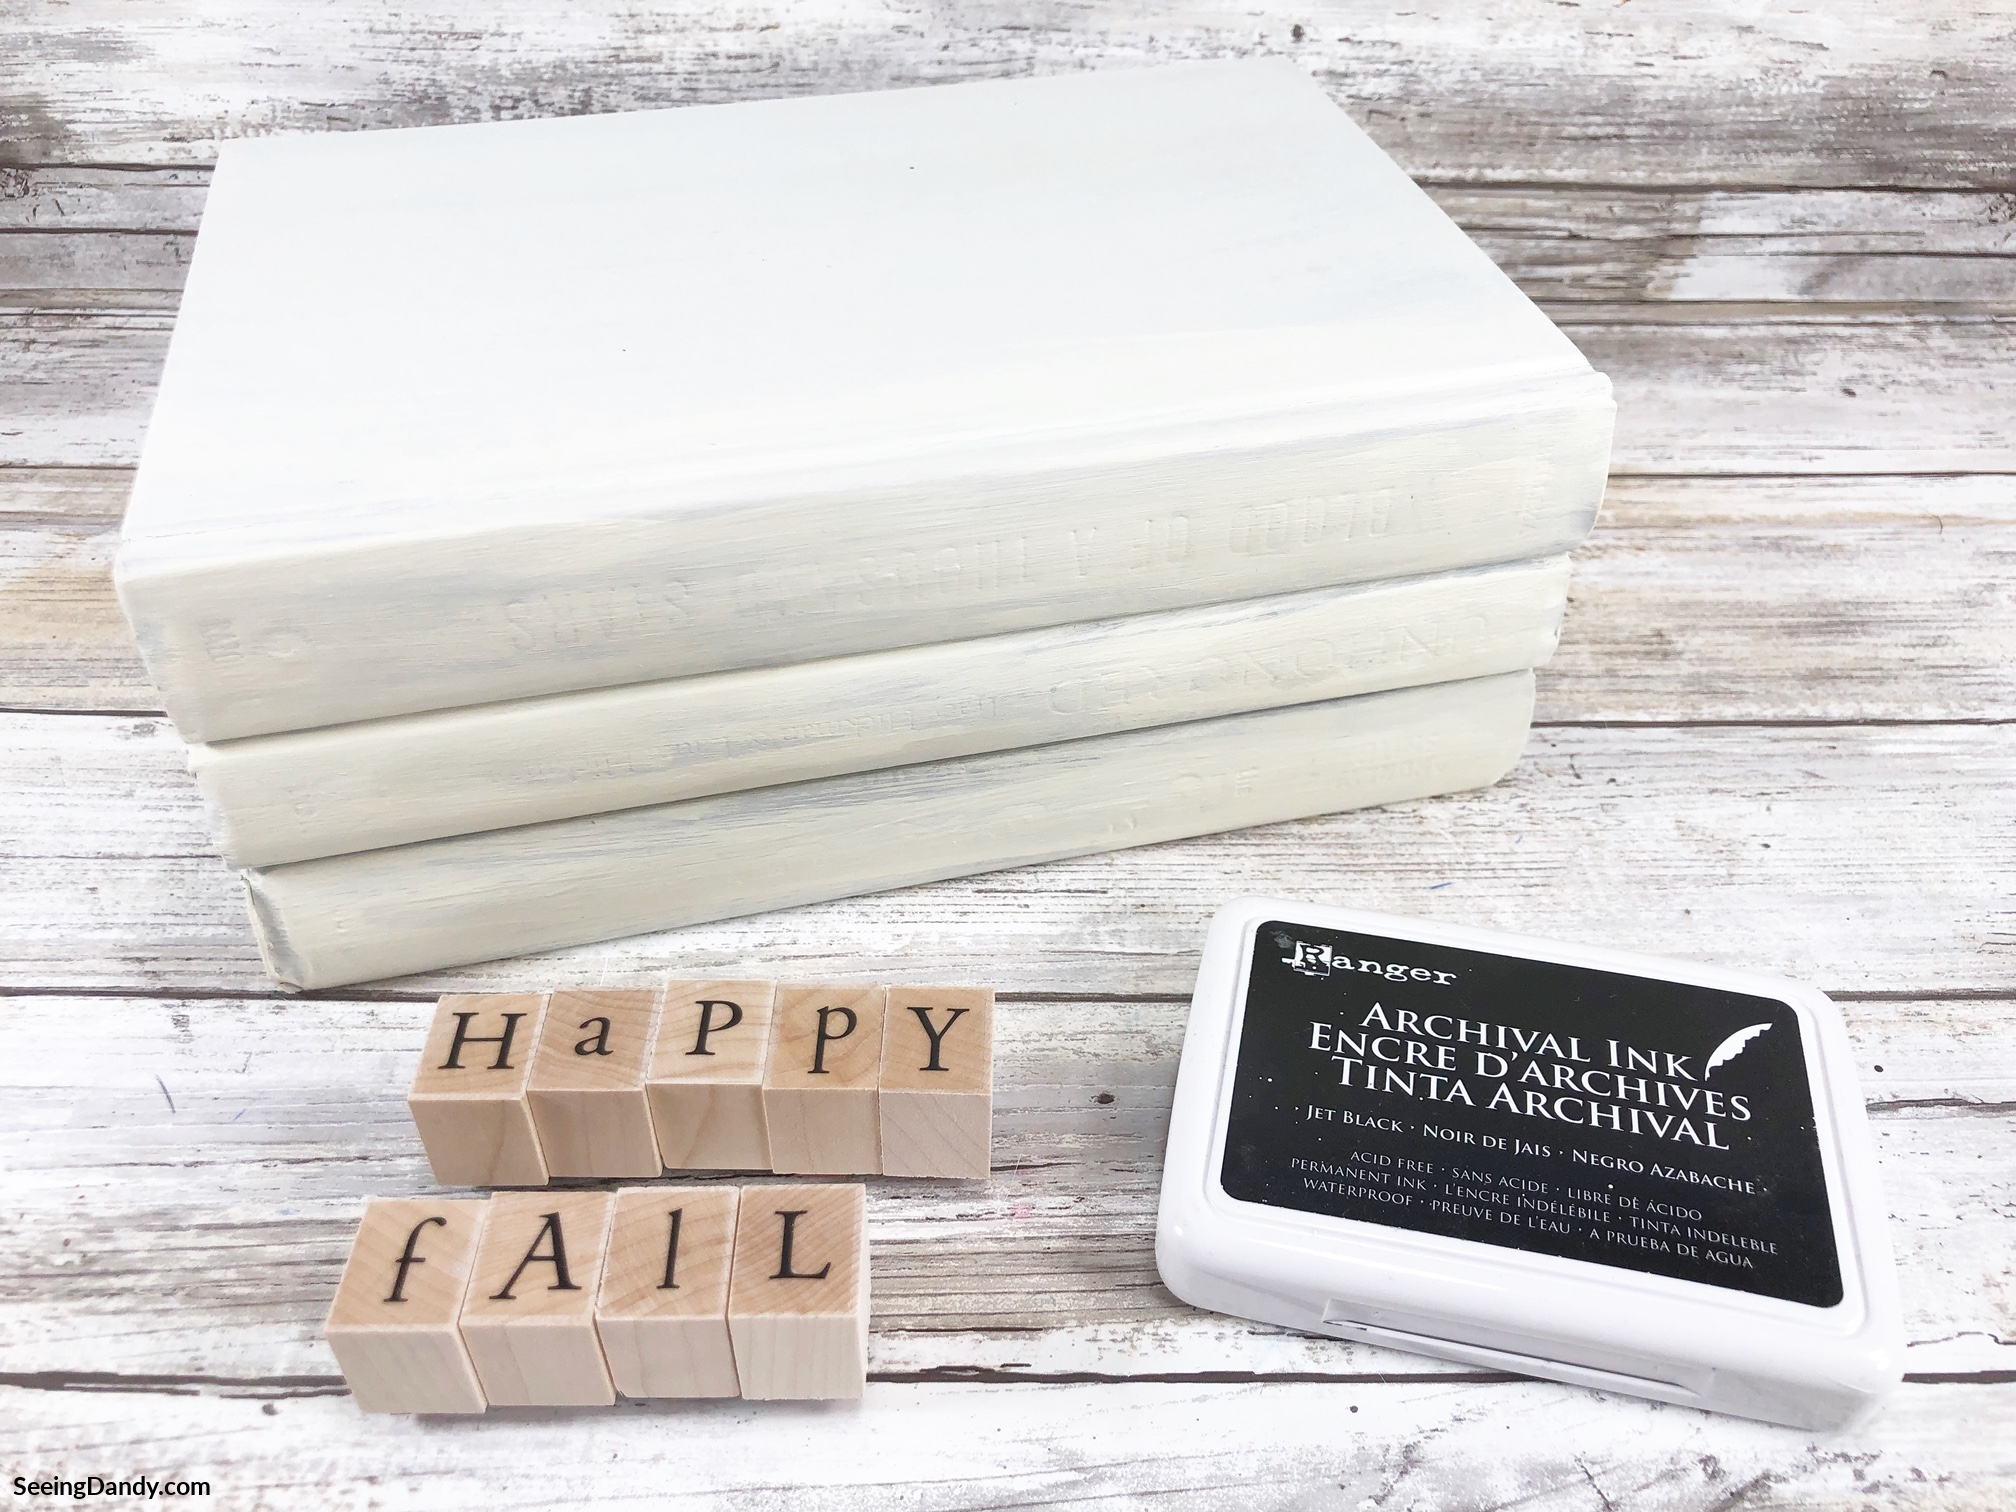 diy stamped book stacks, easy crafts, dollar tree crafts, wooden stamps, happy fall